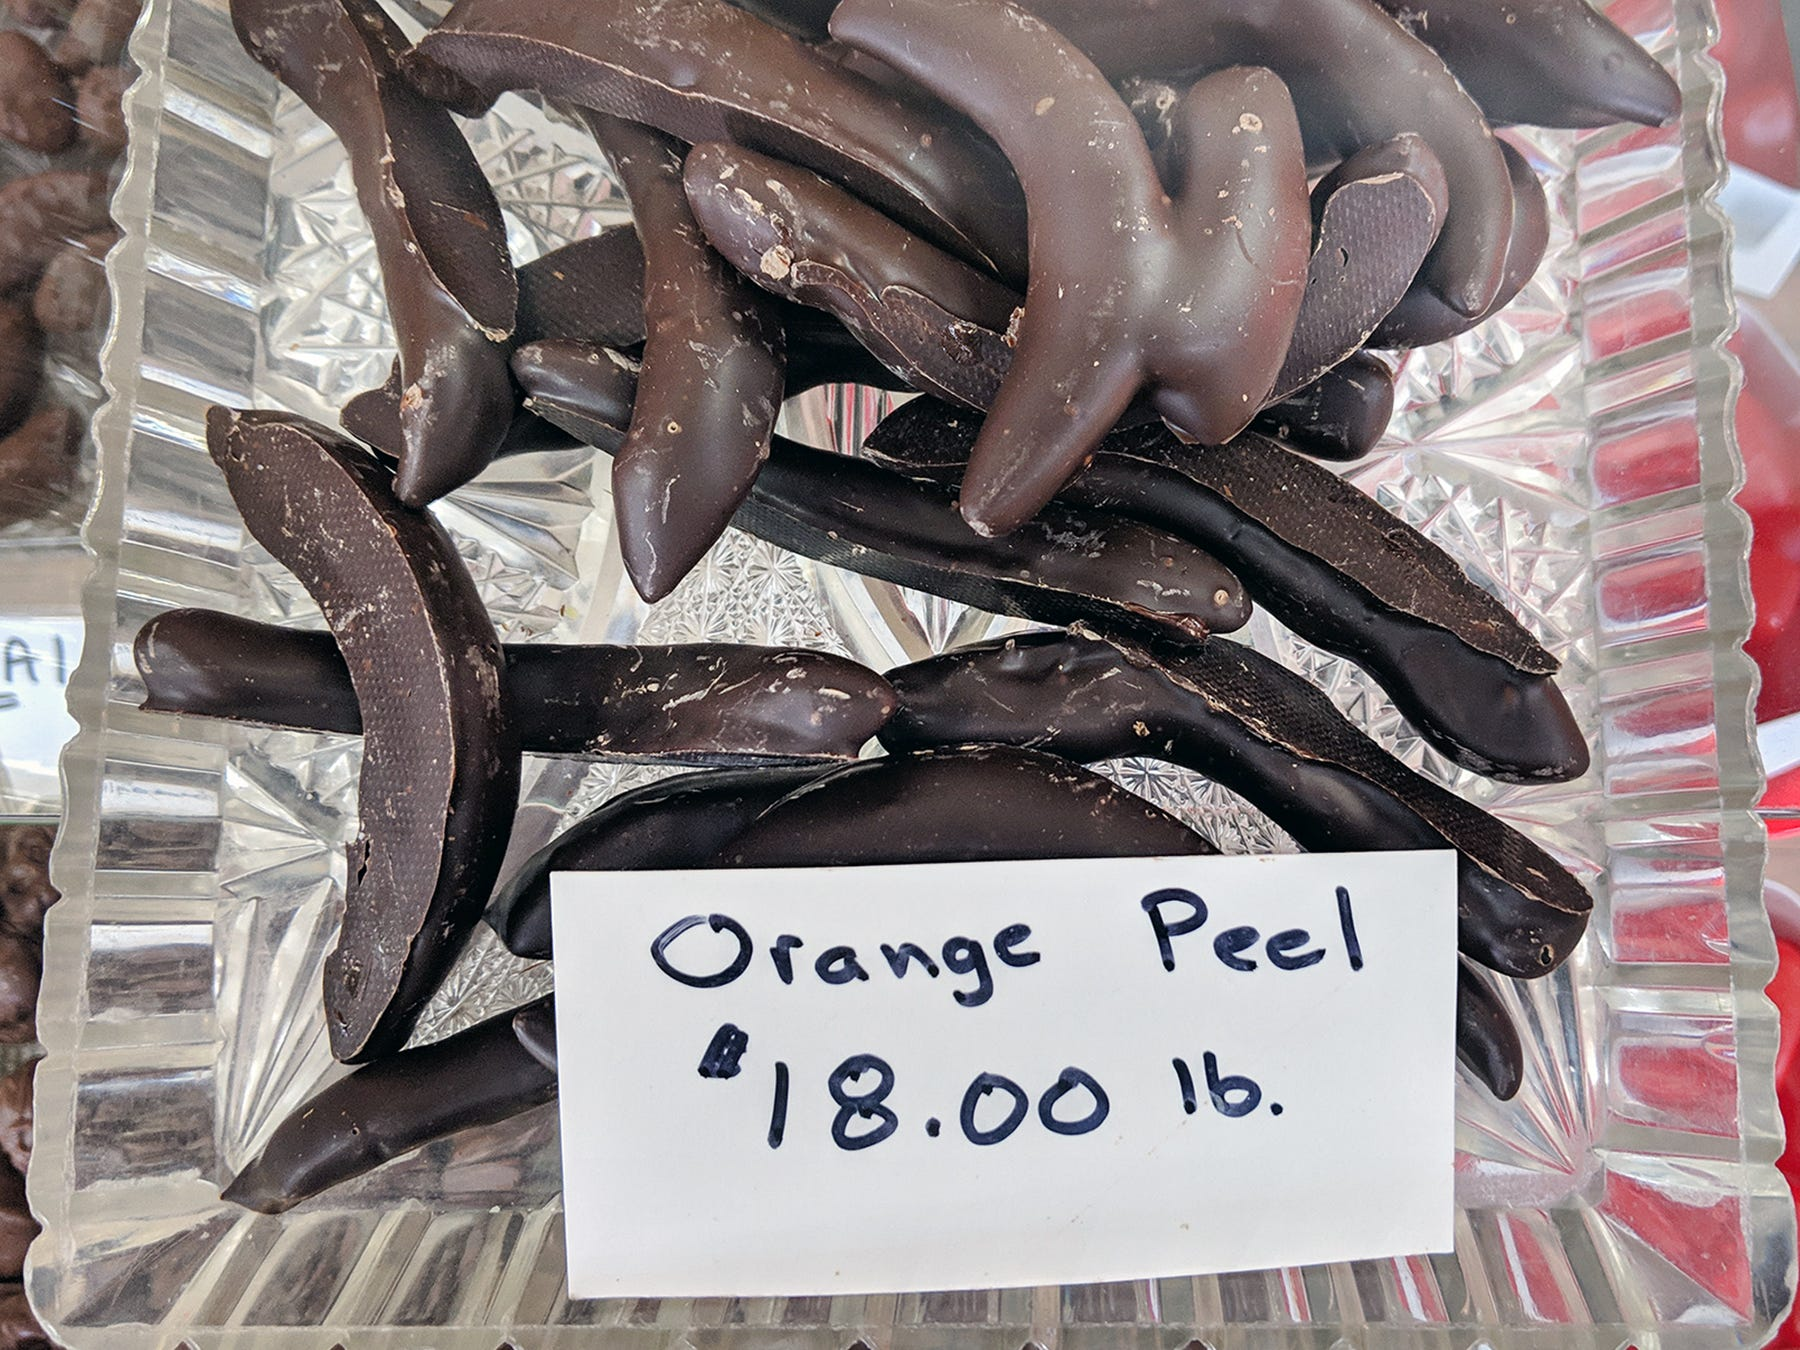 Chocolate-covered orange peel is sold at Fitzkee's Candies.